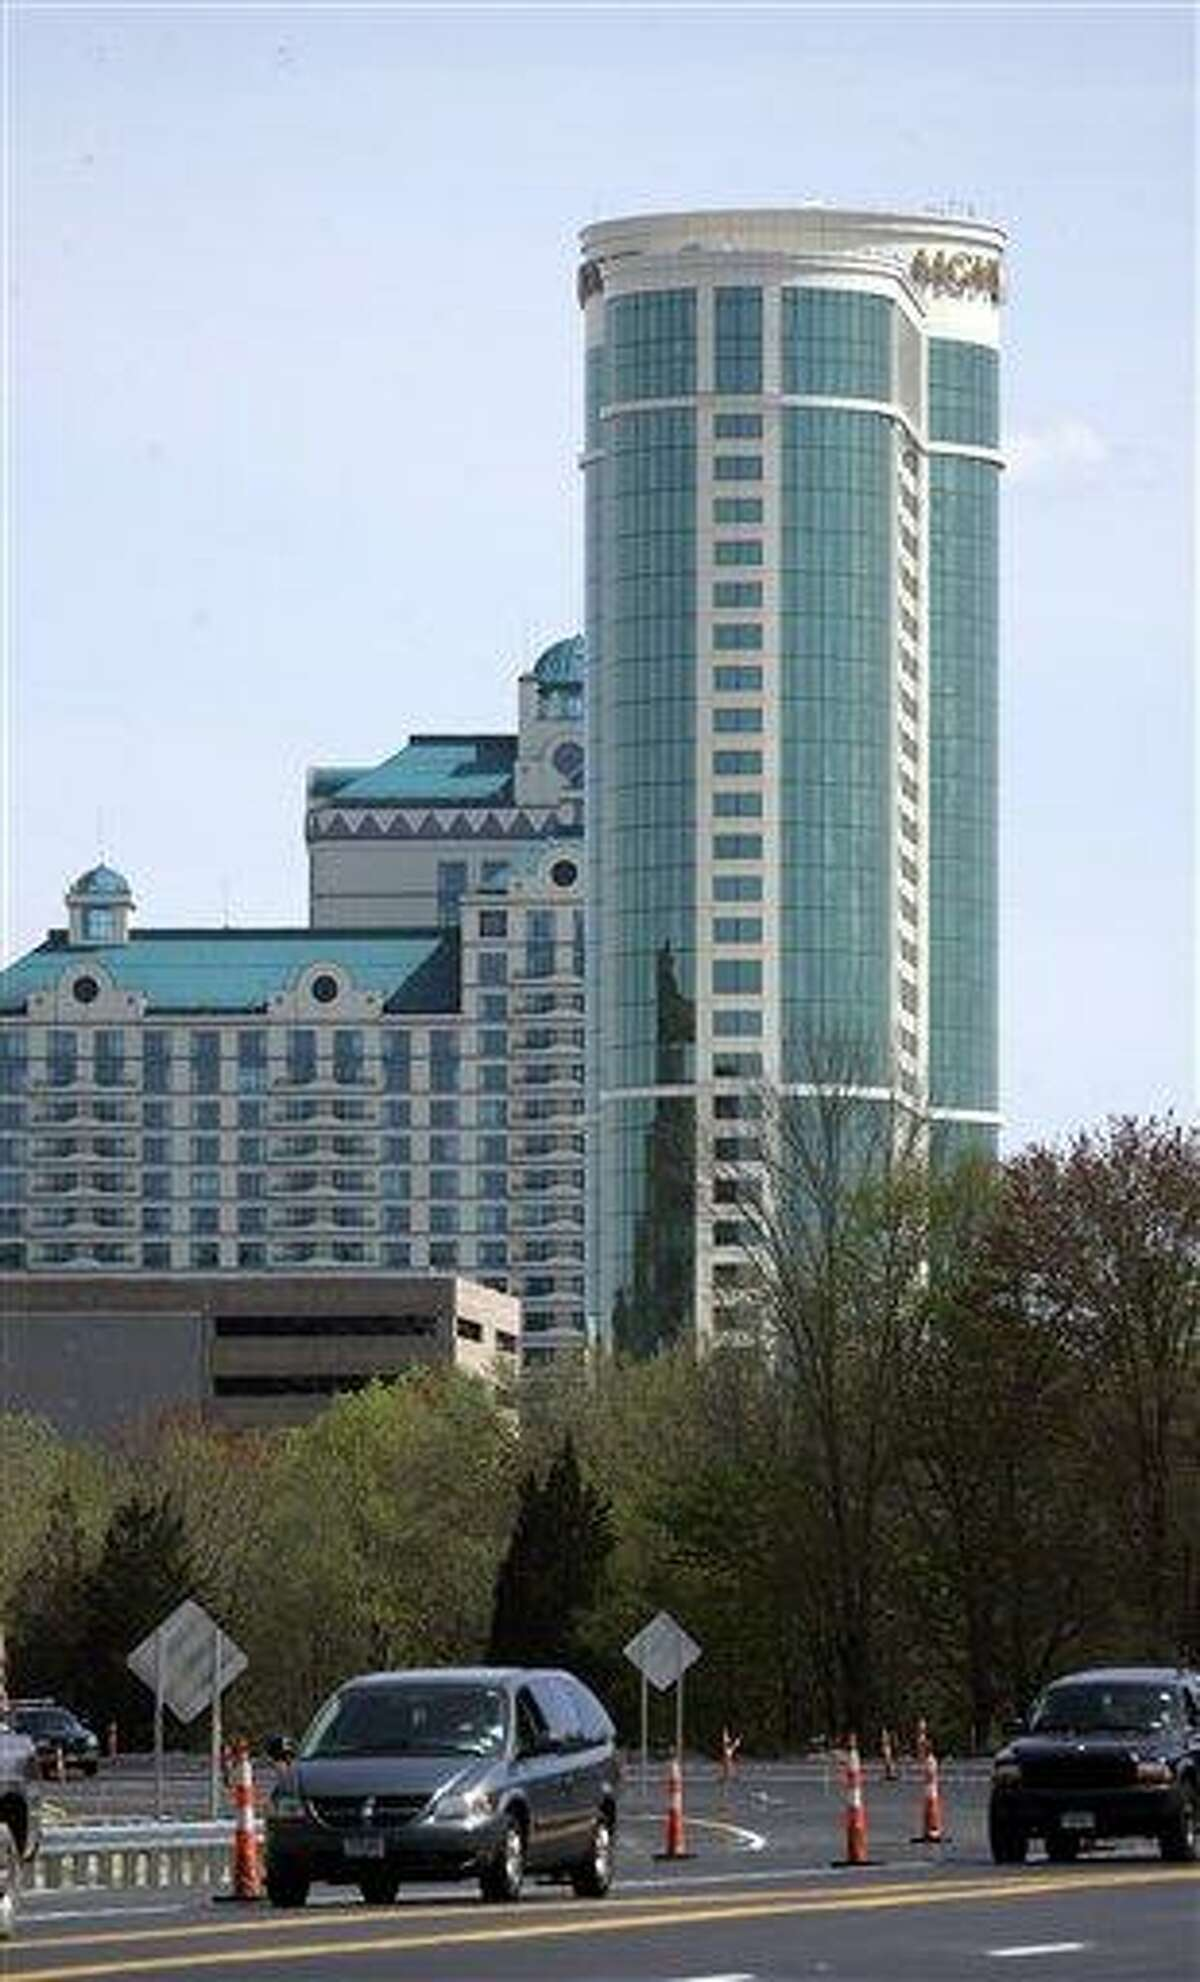 The MGM Grand Hotel, part of the Foxwoods Resort Casino, dominates the skyline in Mashantucket. Associated Press file photo